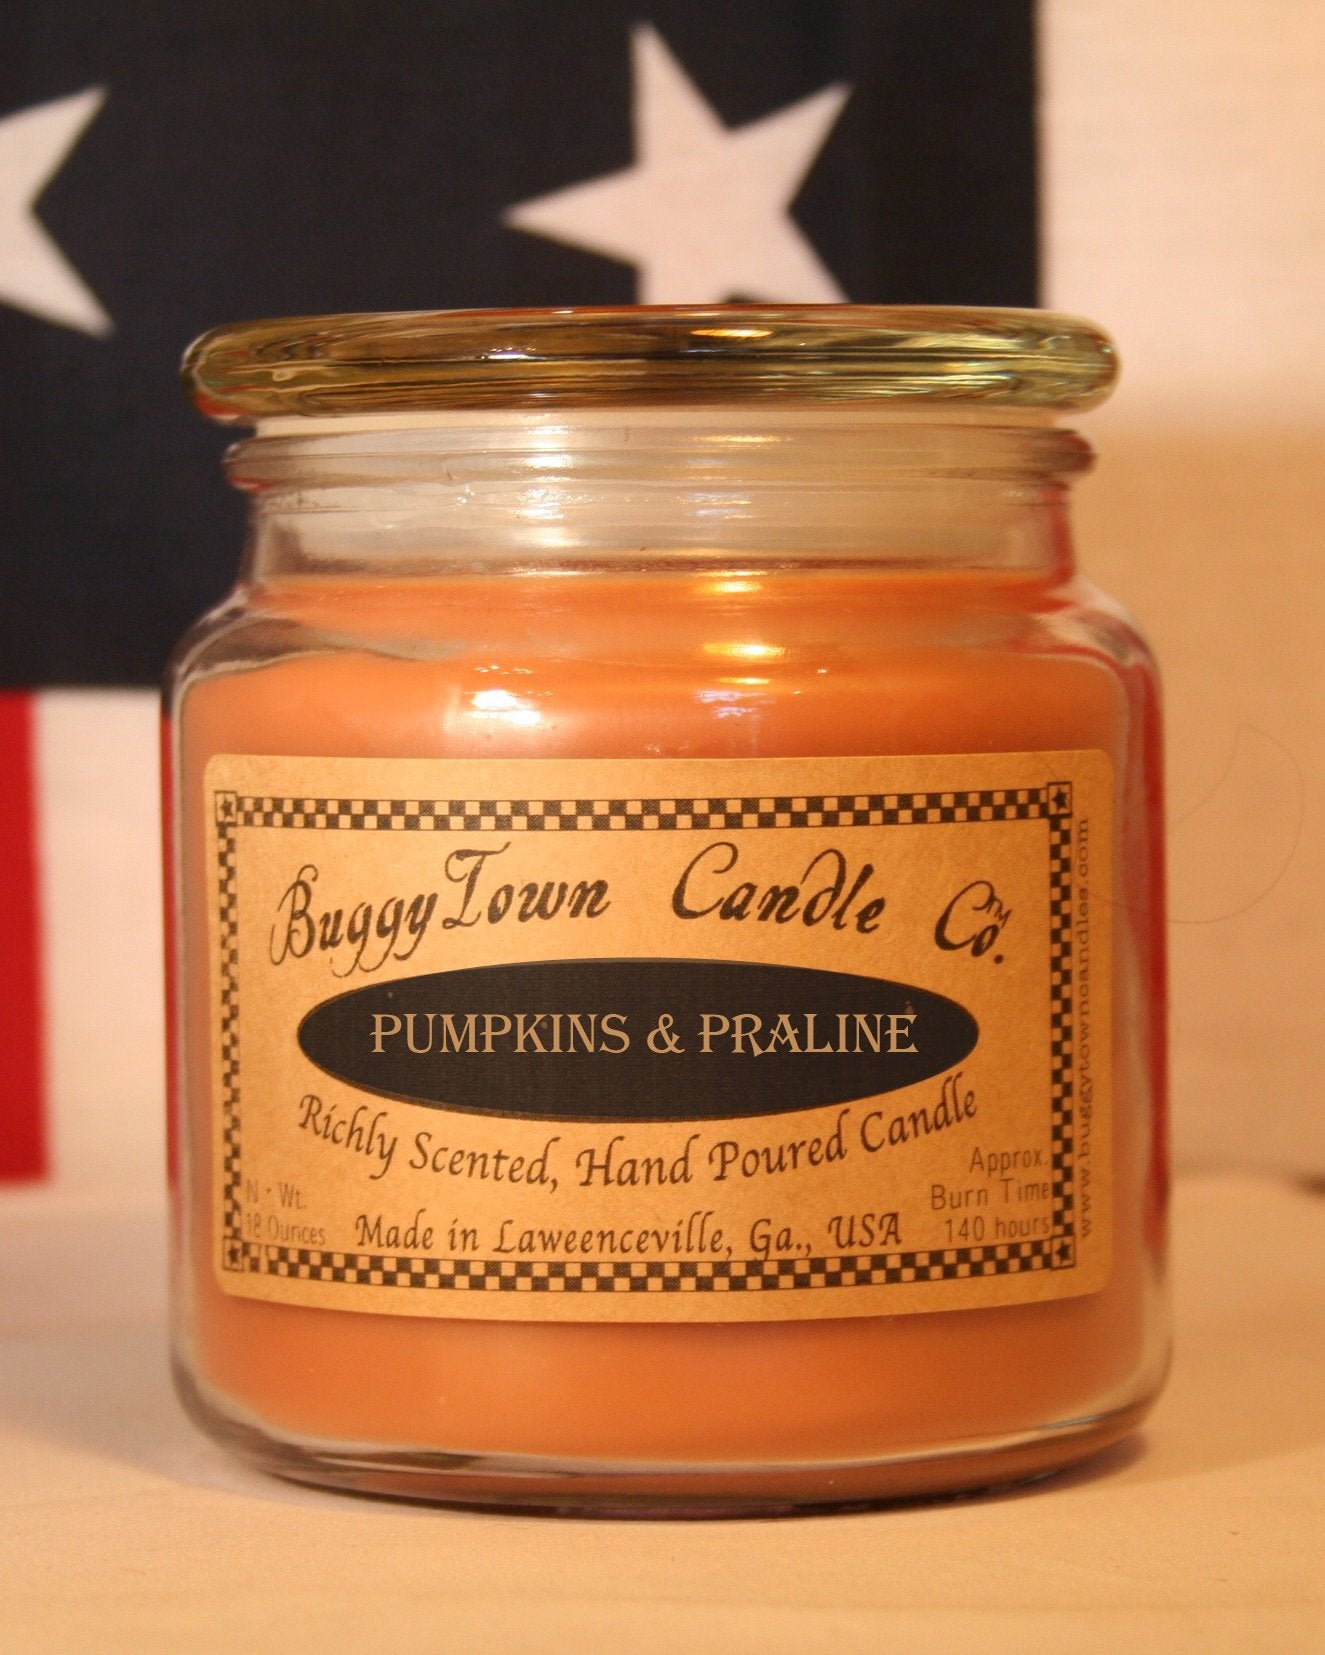 Pumpkins & Pralines Candles